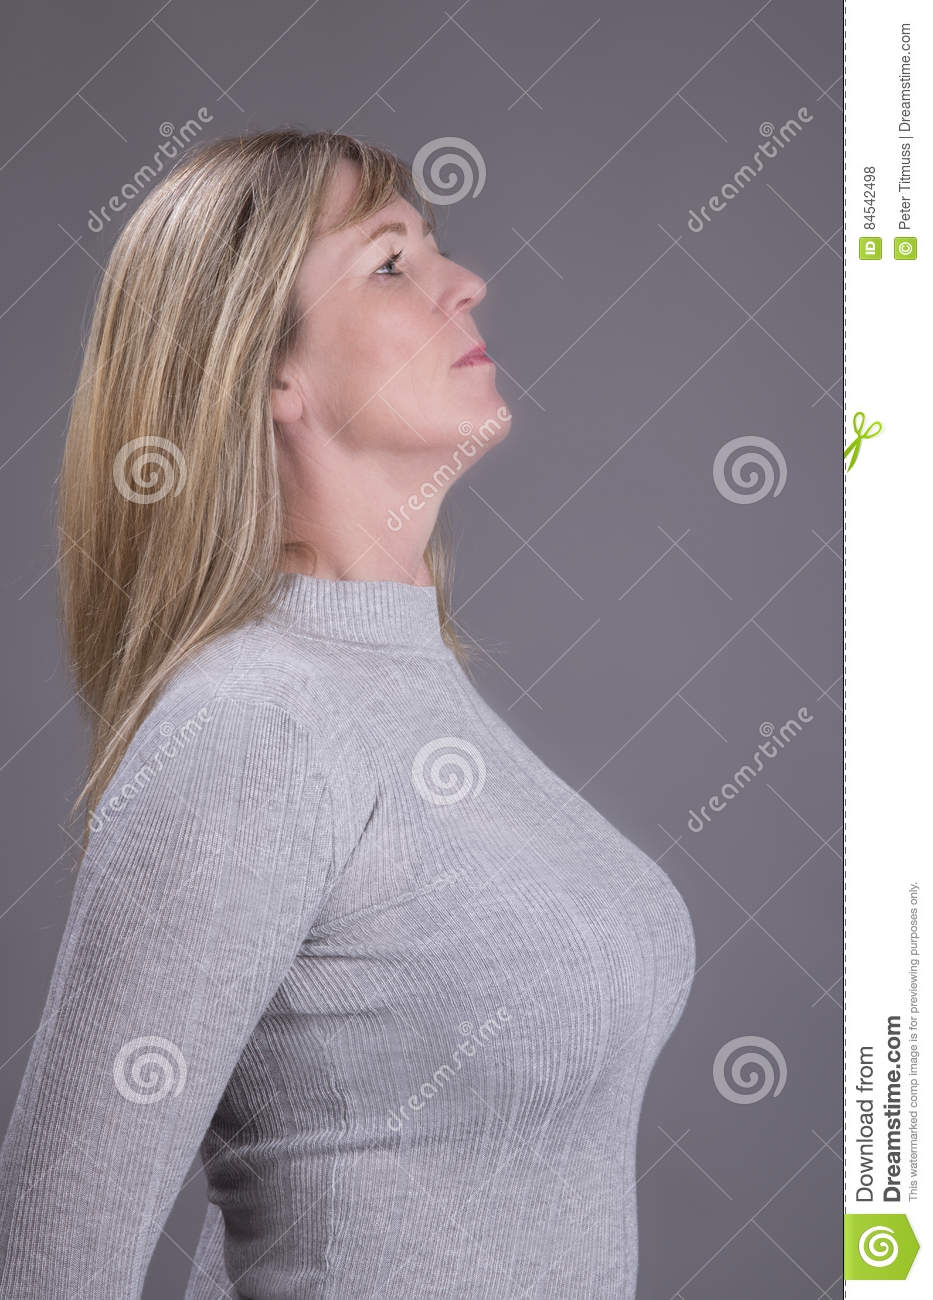 Collection Of Busty Women In Tight Sweaters Gallery photo 3